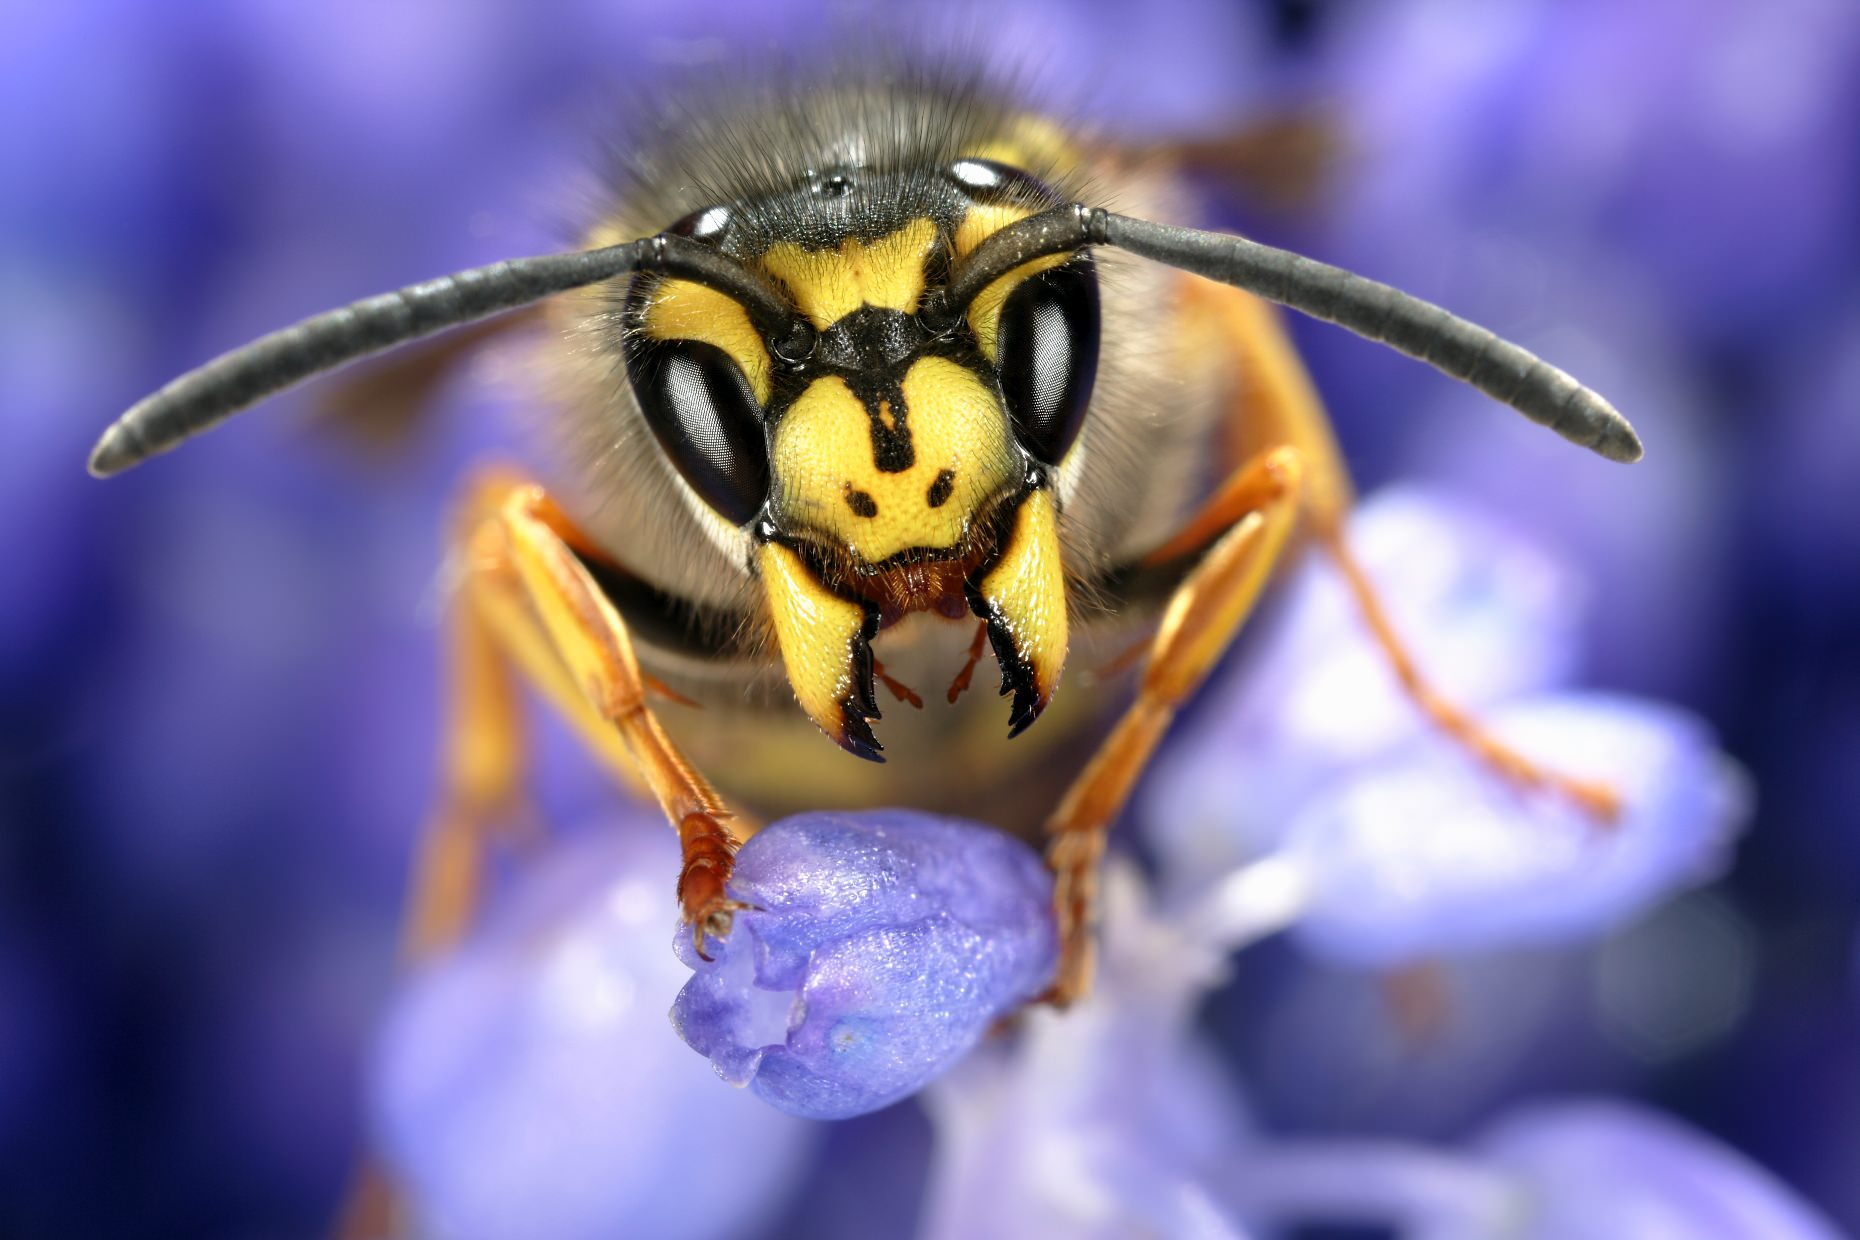 Queen common wasp, Vespula vulgaris, resting on grape hyacinth after waking